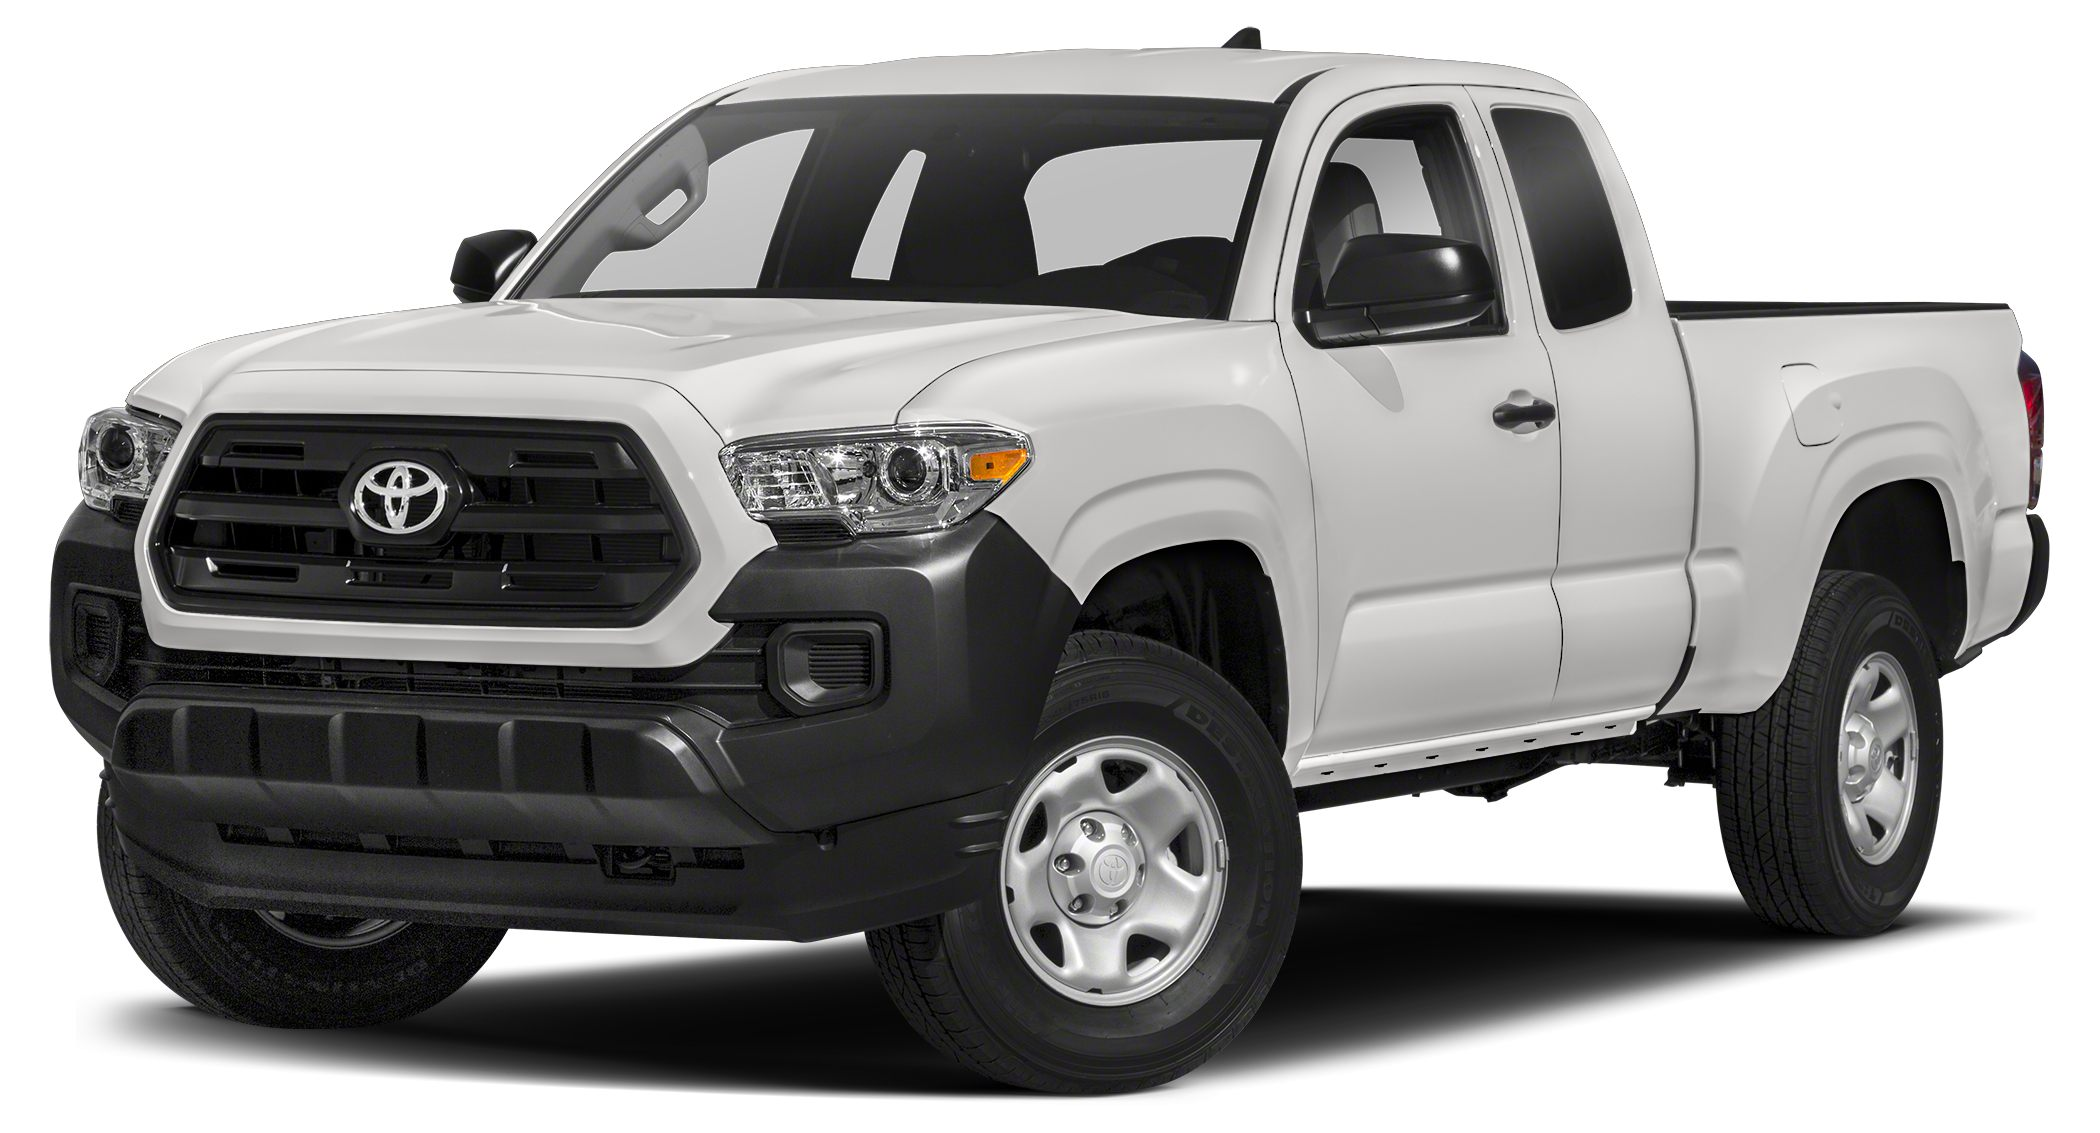 2017 Toyota Tacoma SR SUPER WHITE exterior and CEMENT GRAY interior SR trim CD Player Bluetooth